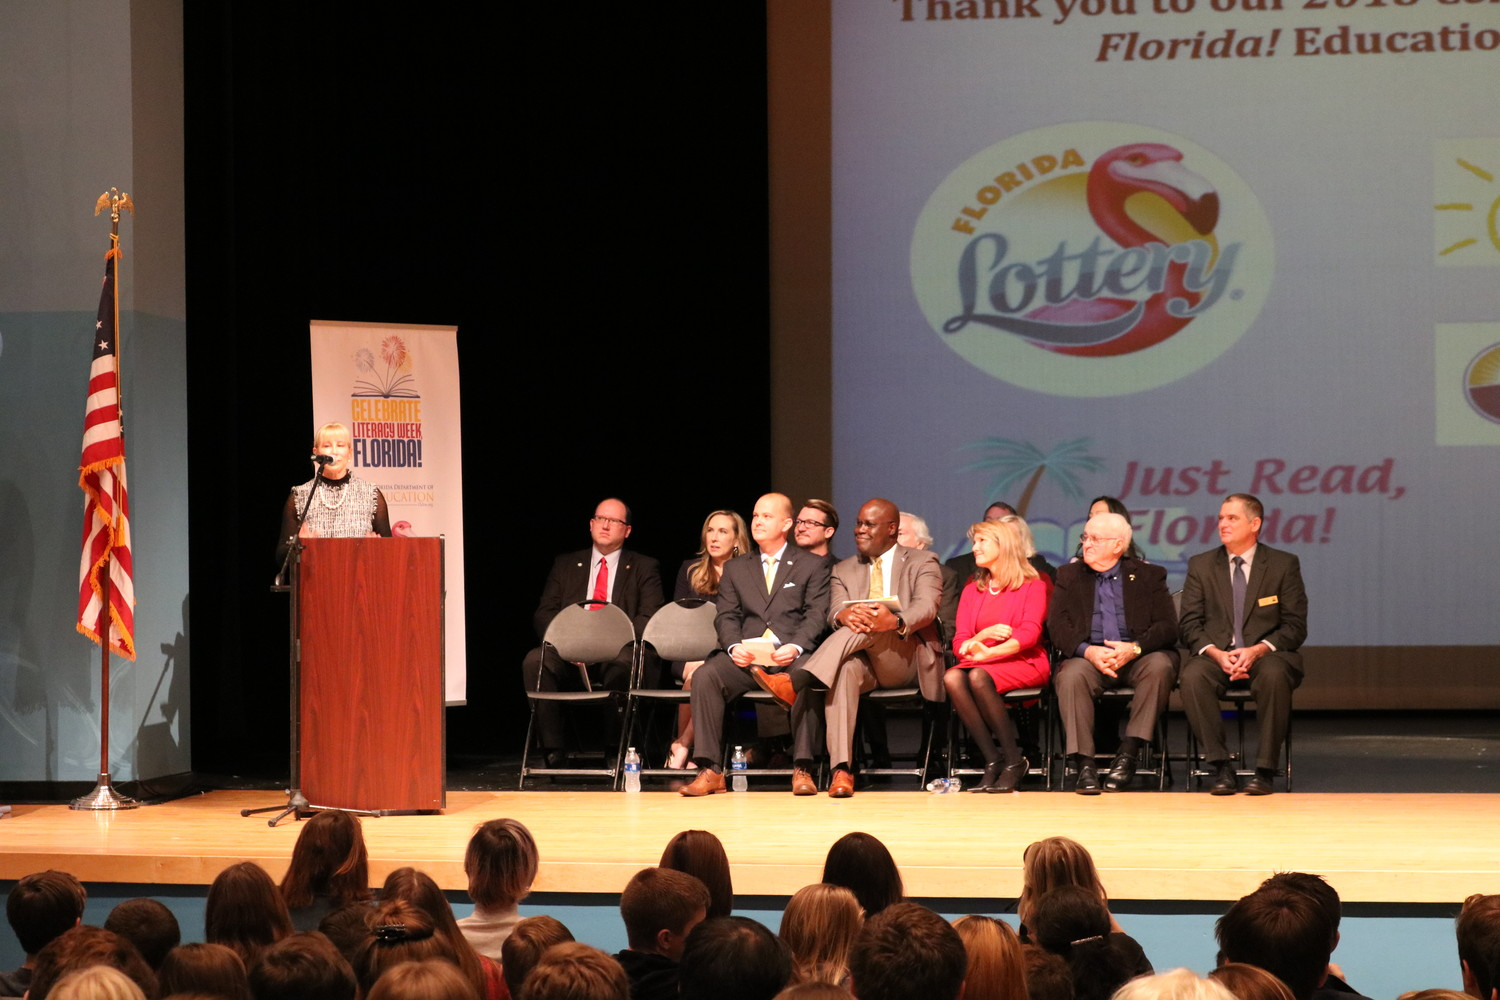 First Lady Ann Scott delivers a speech at the Celebrate Literacy Week kickoff event.